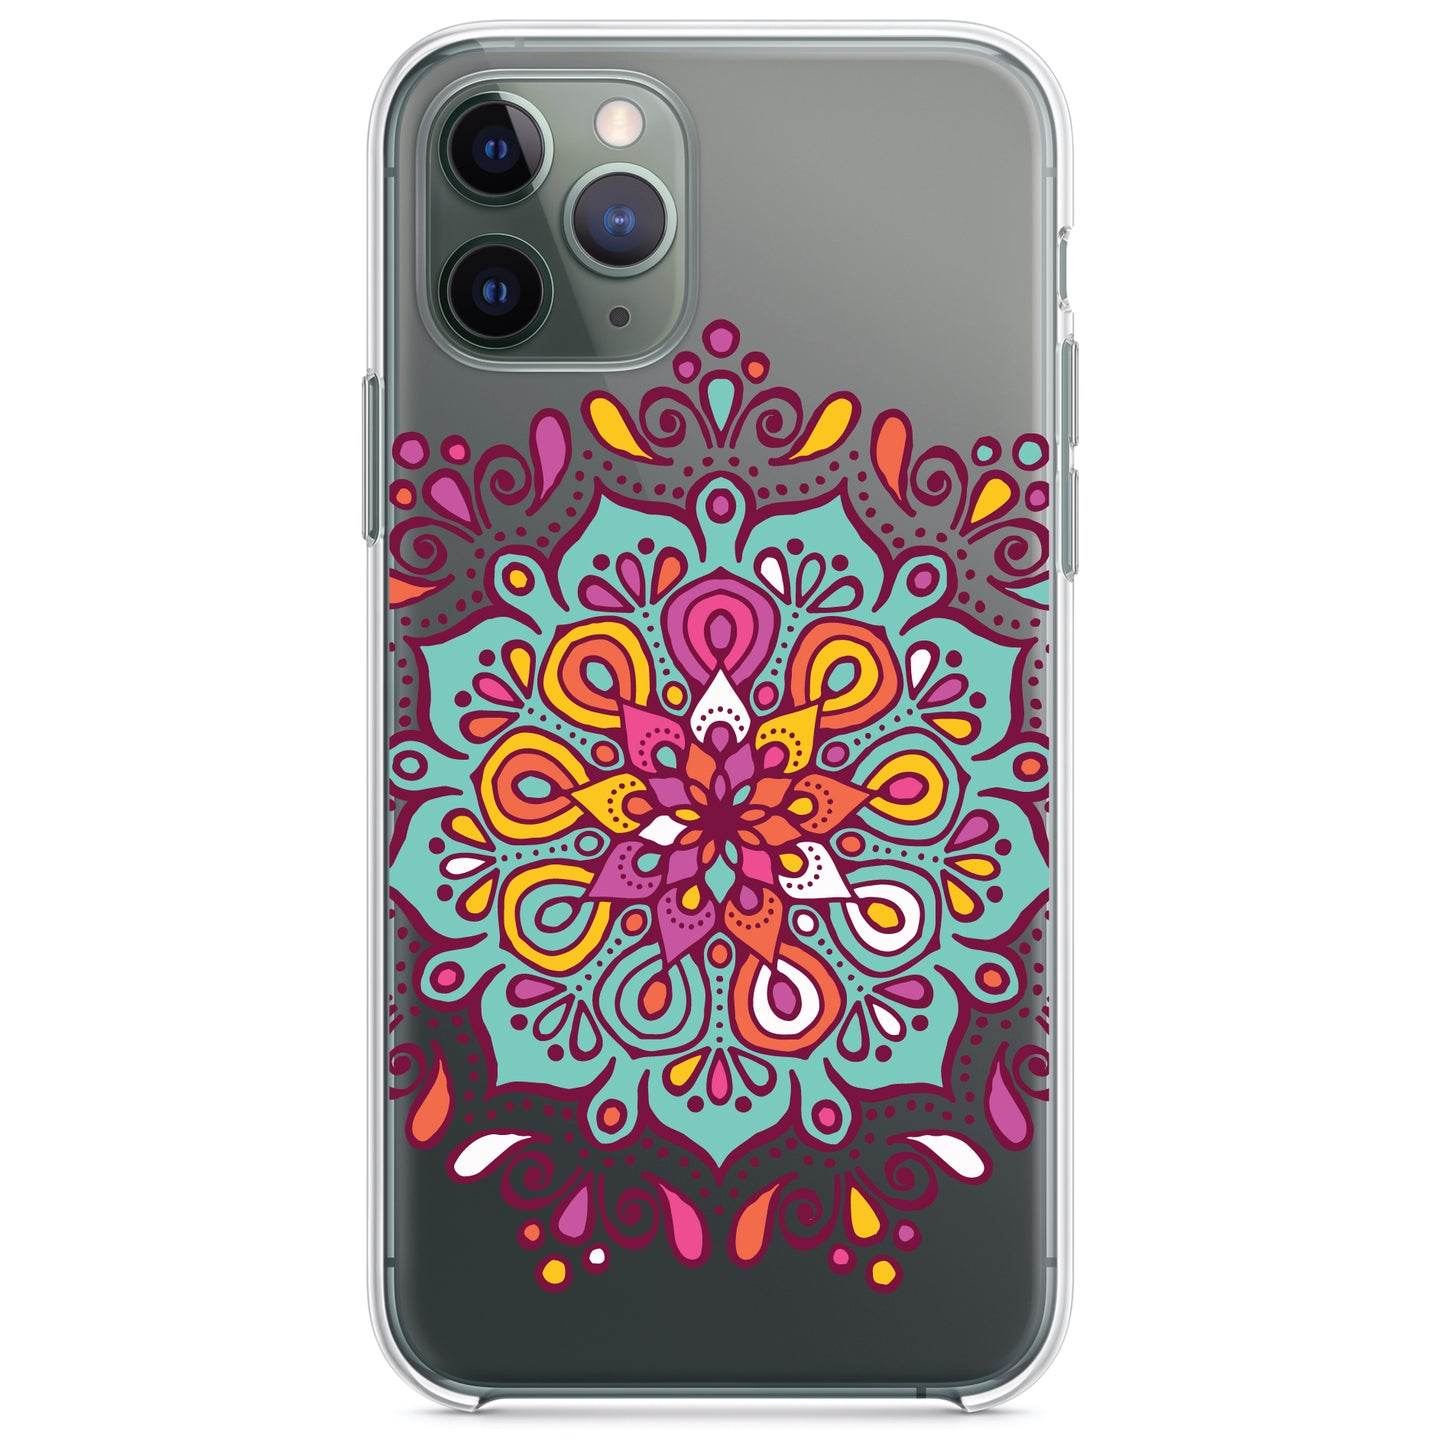 DistinctInk® Clear Shockproof Hybrid Case for Apple iPhone / Samsung Galaxy / Google Pixel - Jewel Tone Mandala Colorful